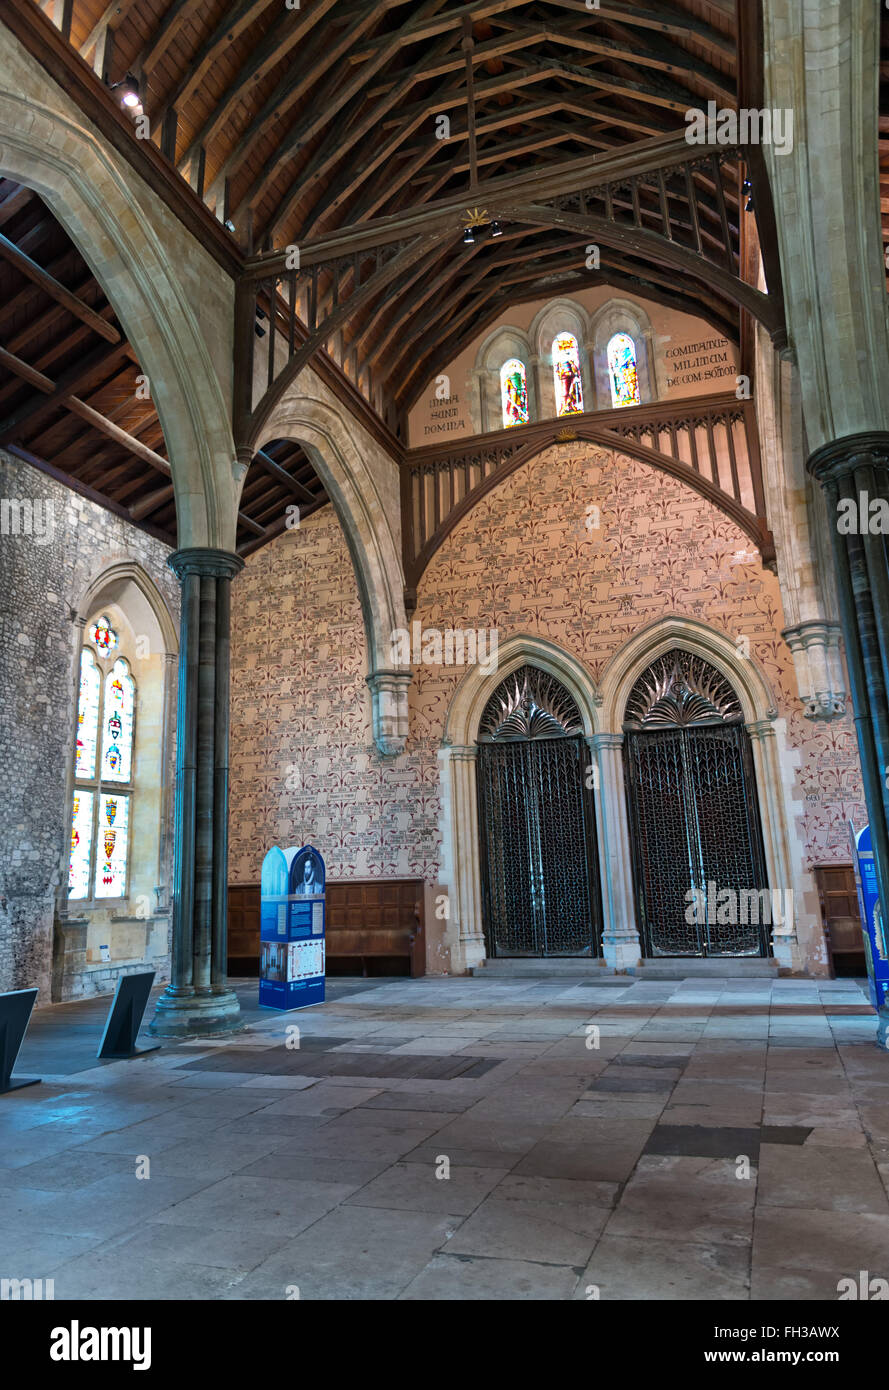 interior of historic old english cathedral with slab stone floor